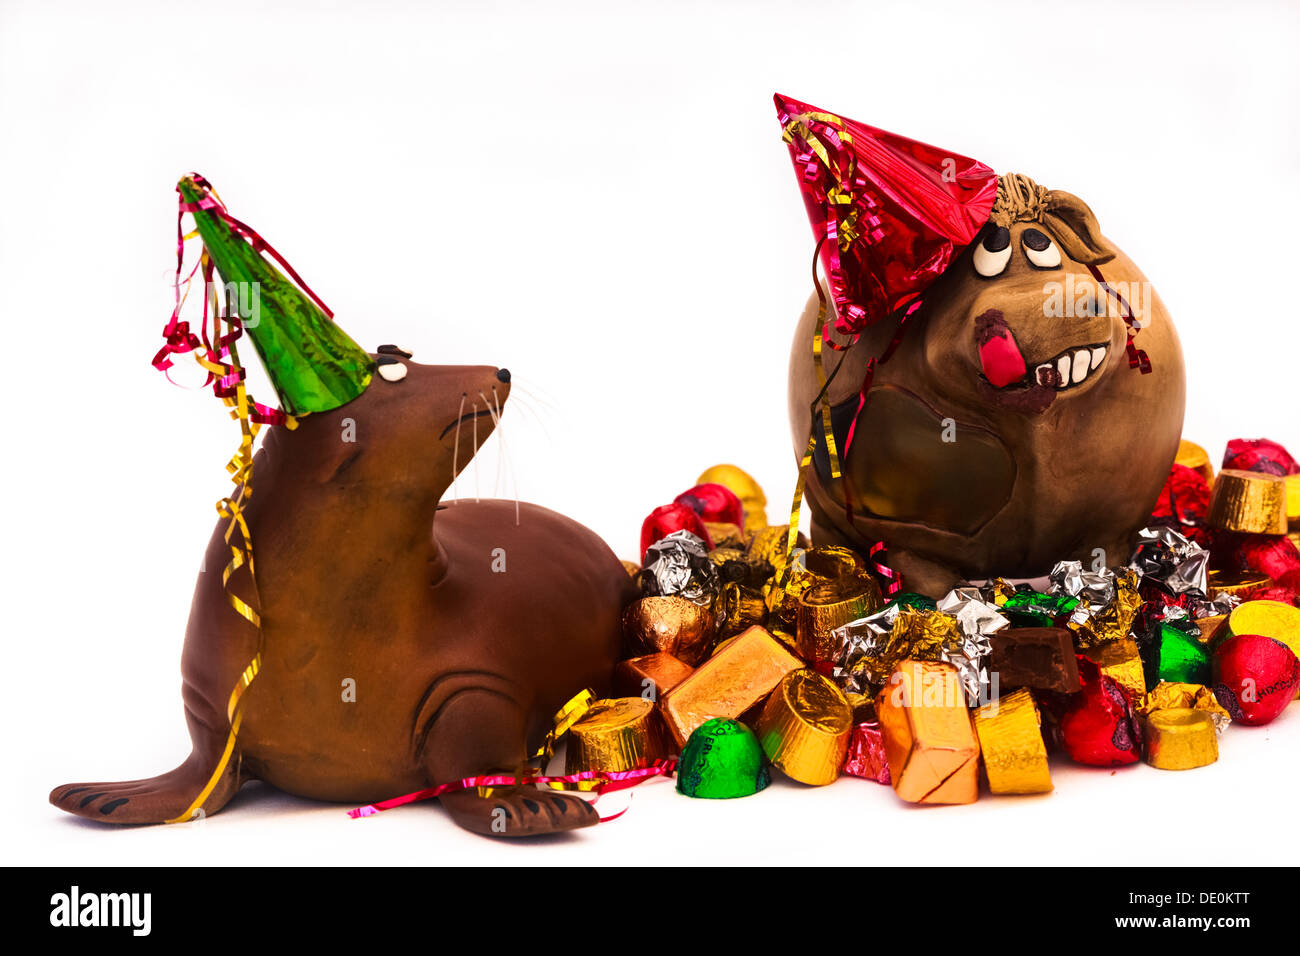 Two clay animals in a party. Happy cow on a chocolate high, disapproving sea lion, standing on a pile of bonbons and wrappers, - Stock Image